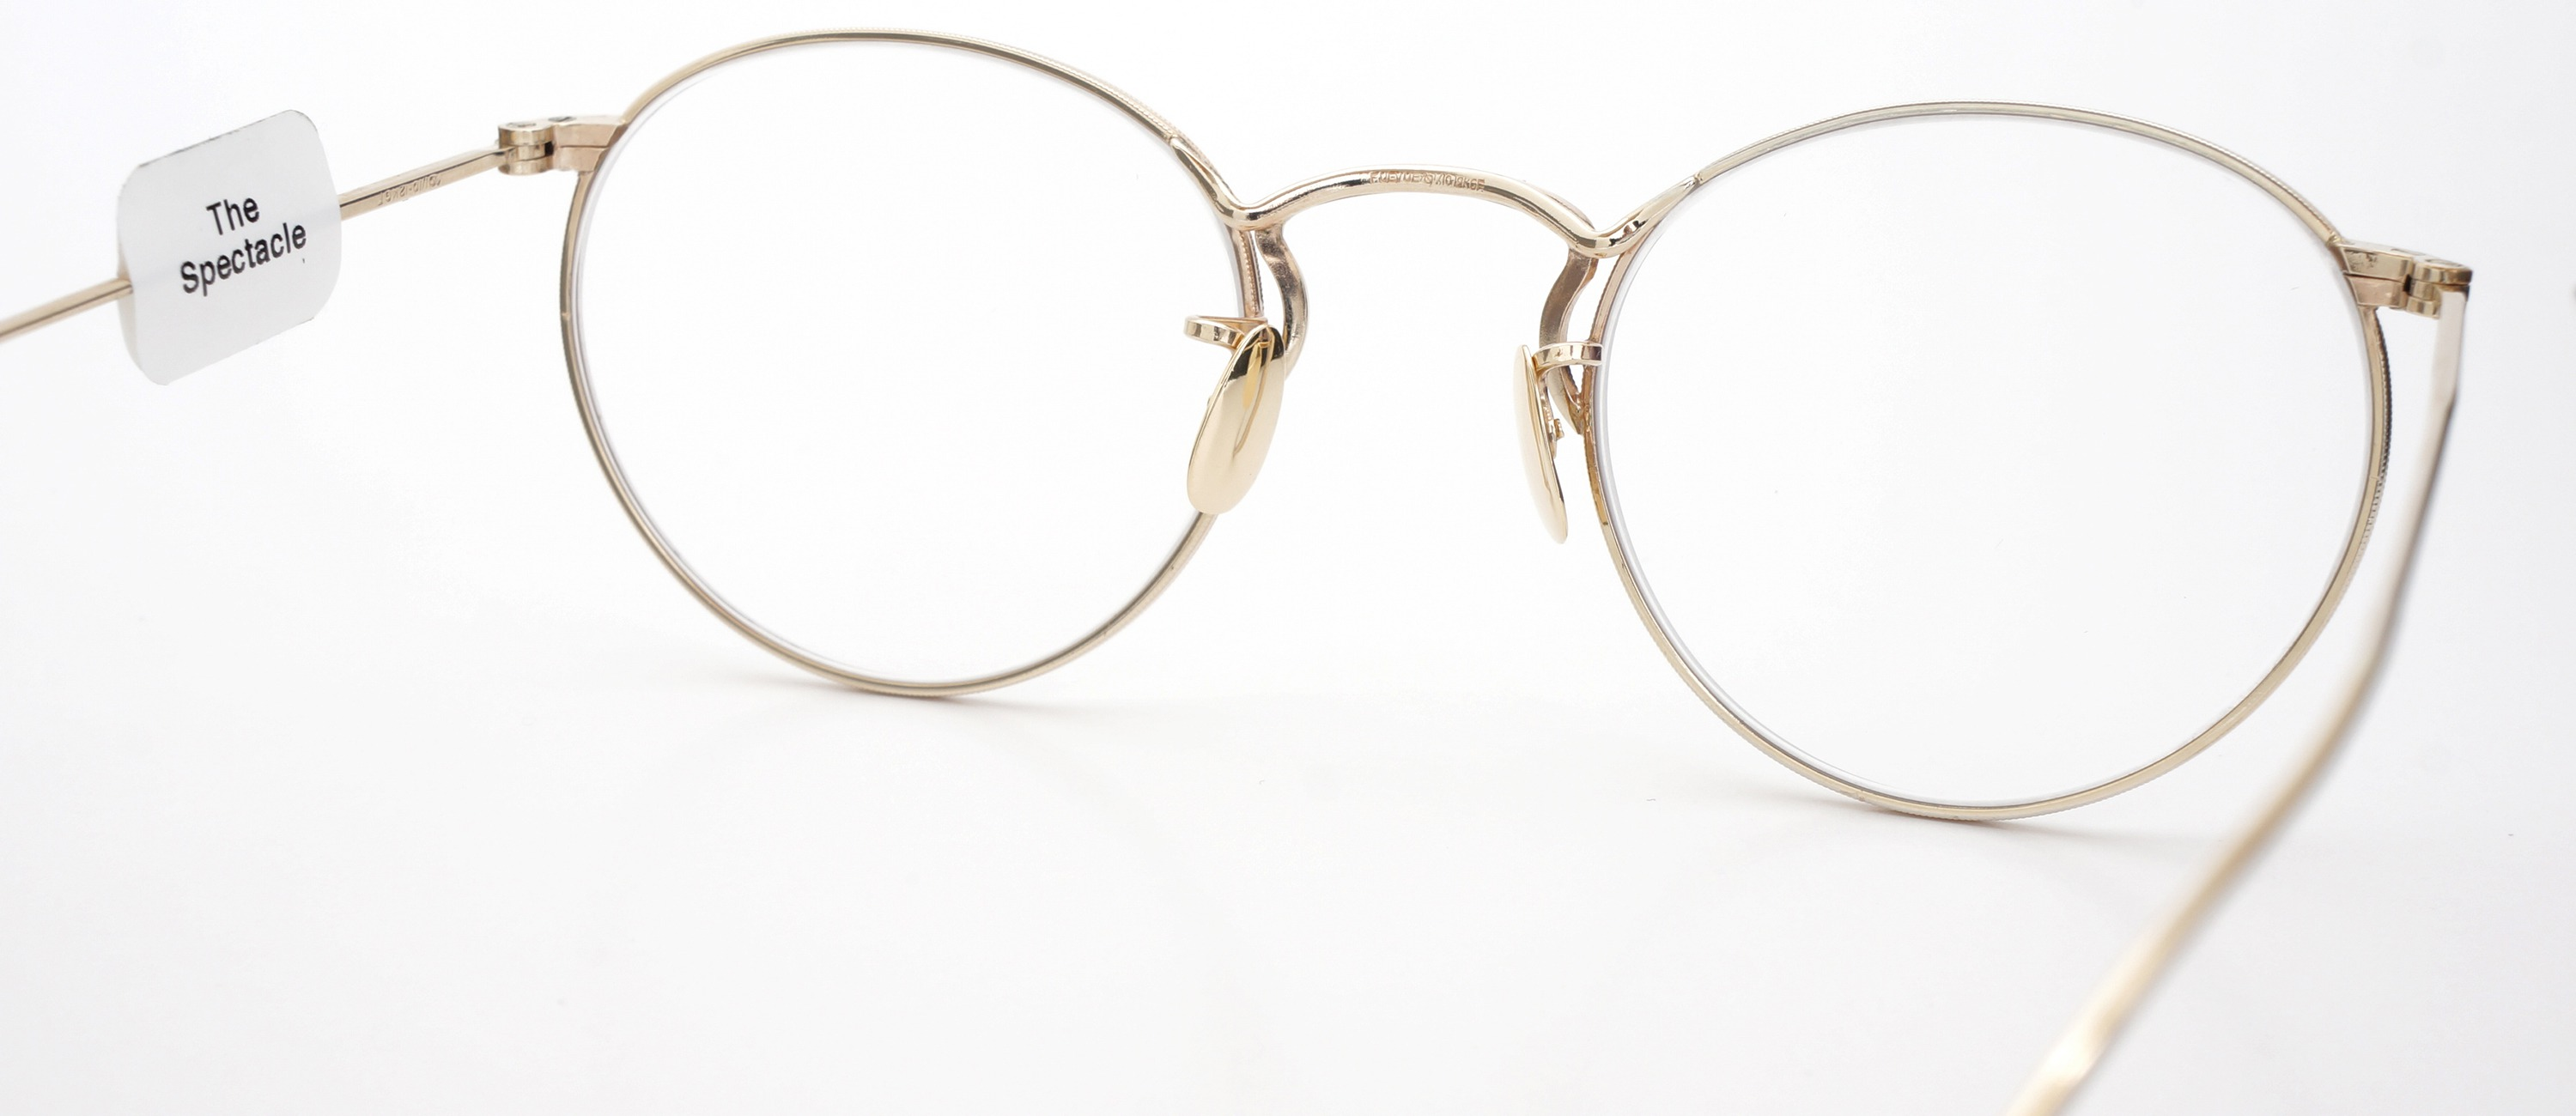 The Spectacle メガネ 1930s-40s  American Optical Full-Frame Ful-Vue P-5 YG 46-22 イメージ8